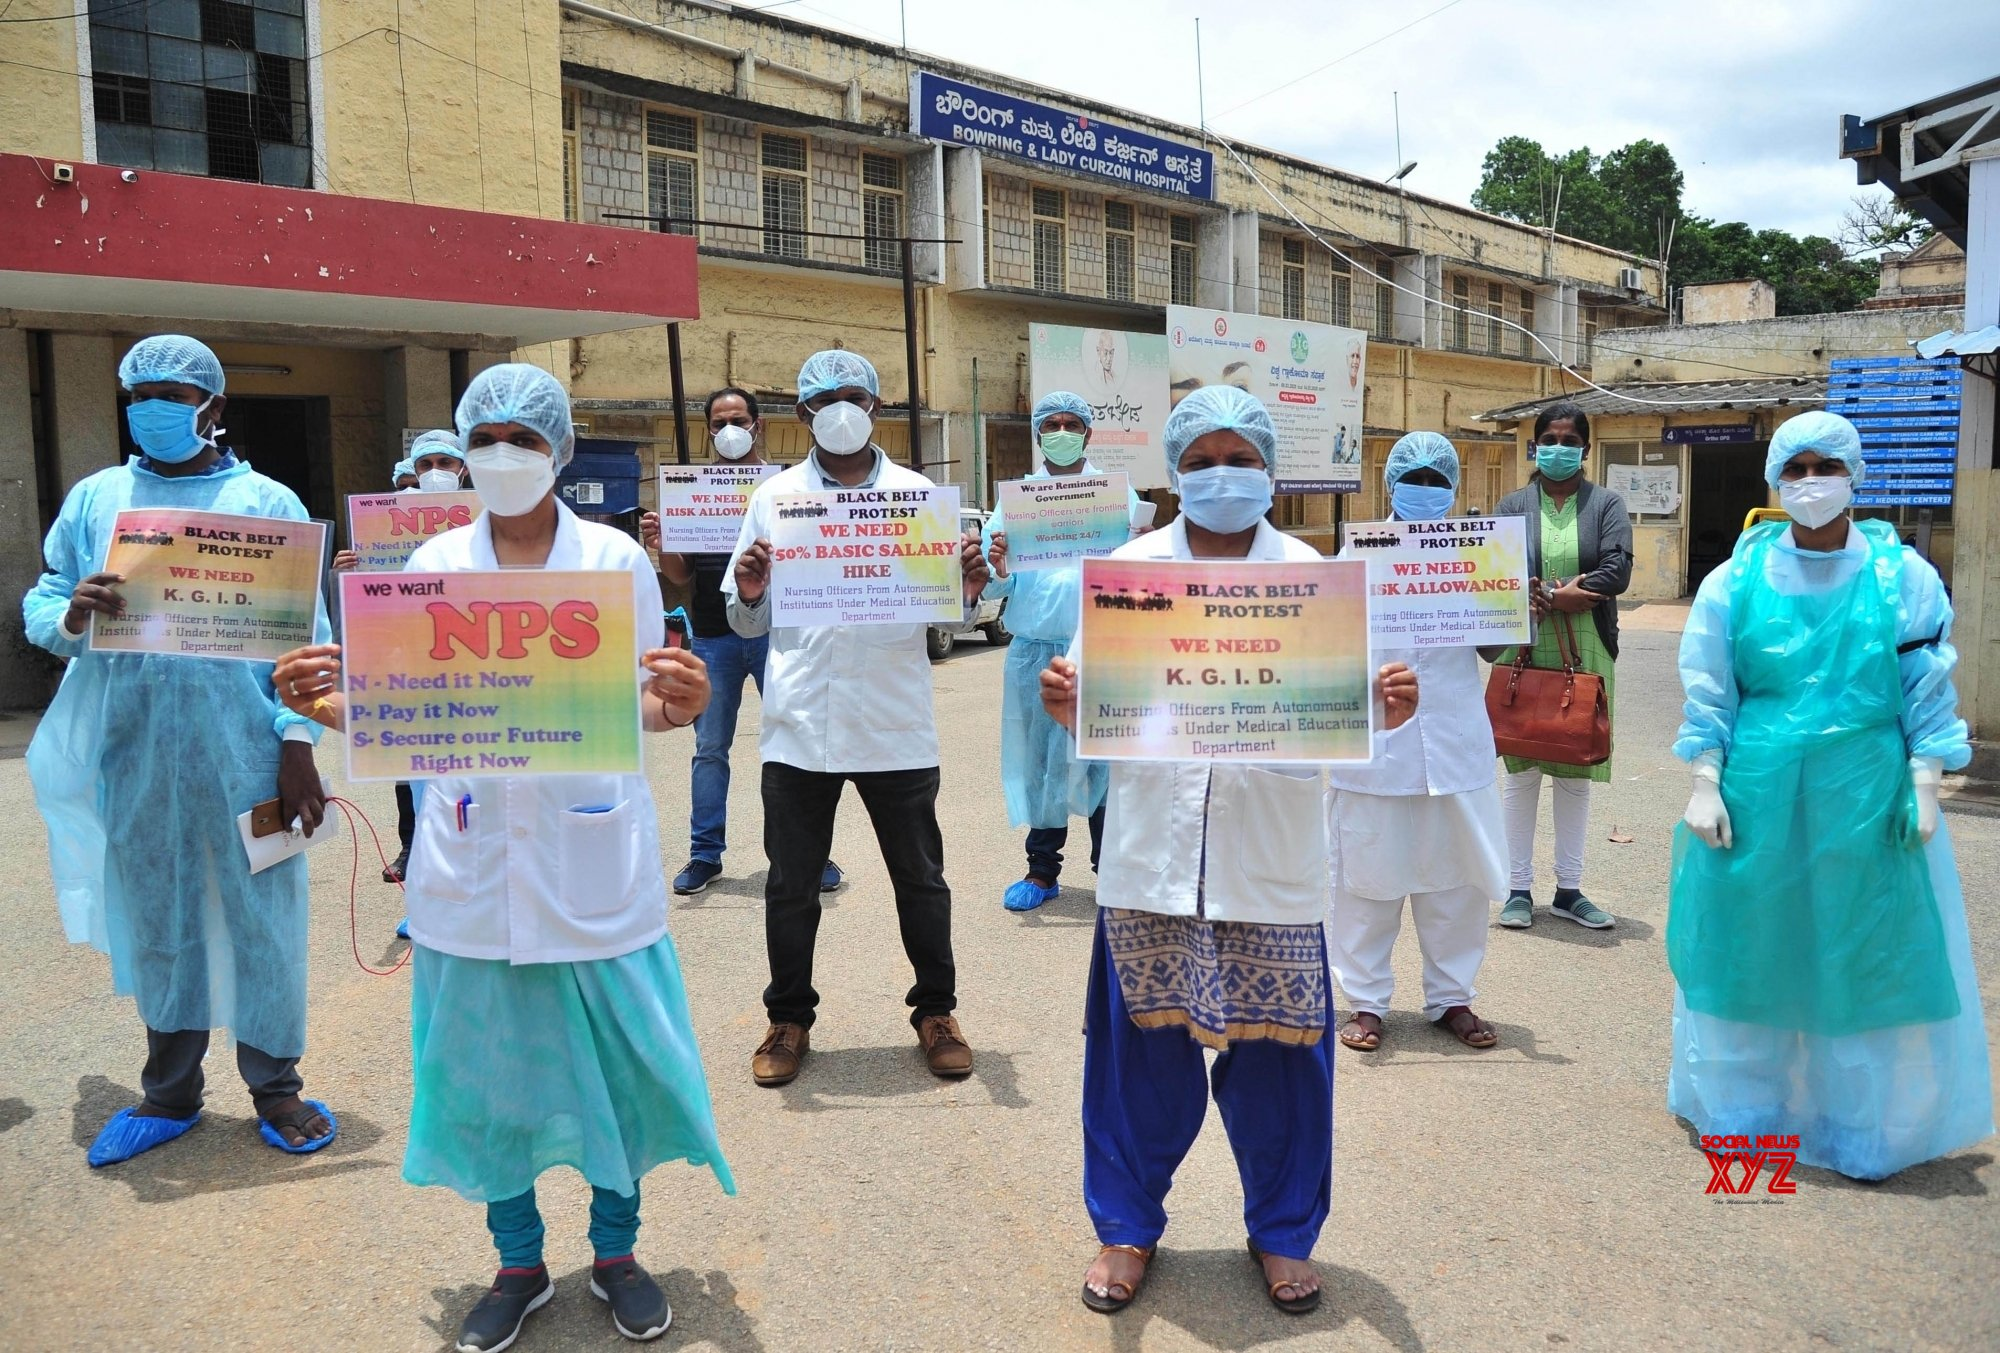 Bengaluru: Bowring and Lady Curzon Hospital staff protests over their demands #Gallery